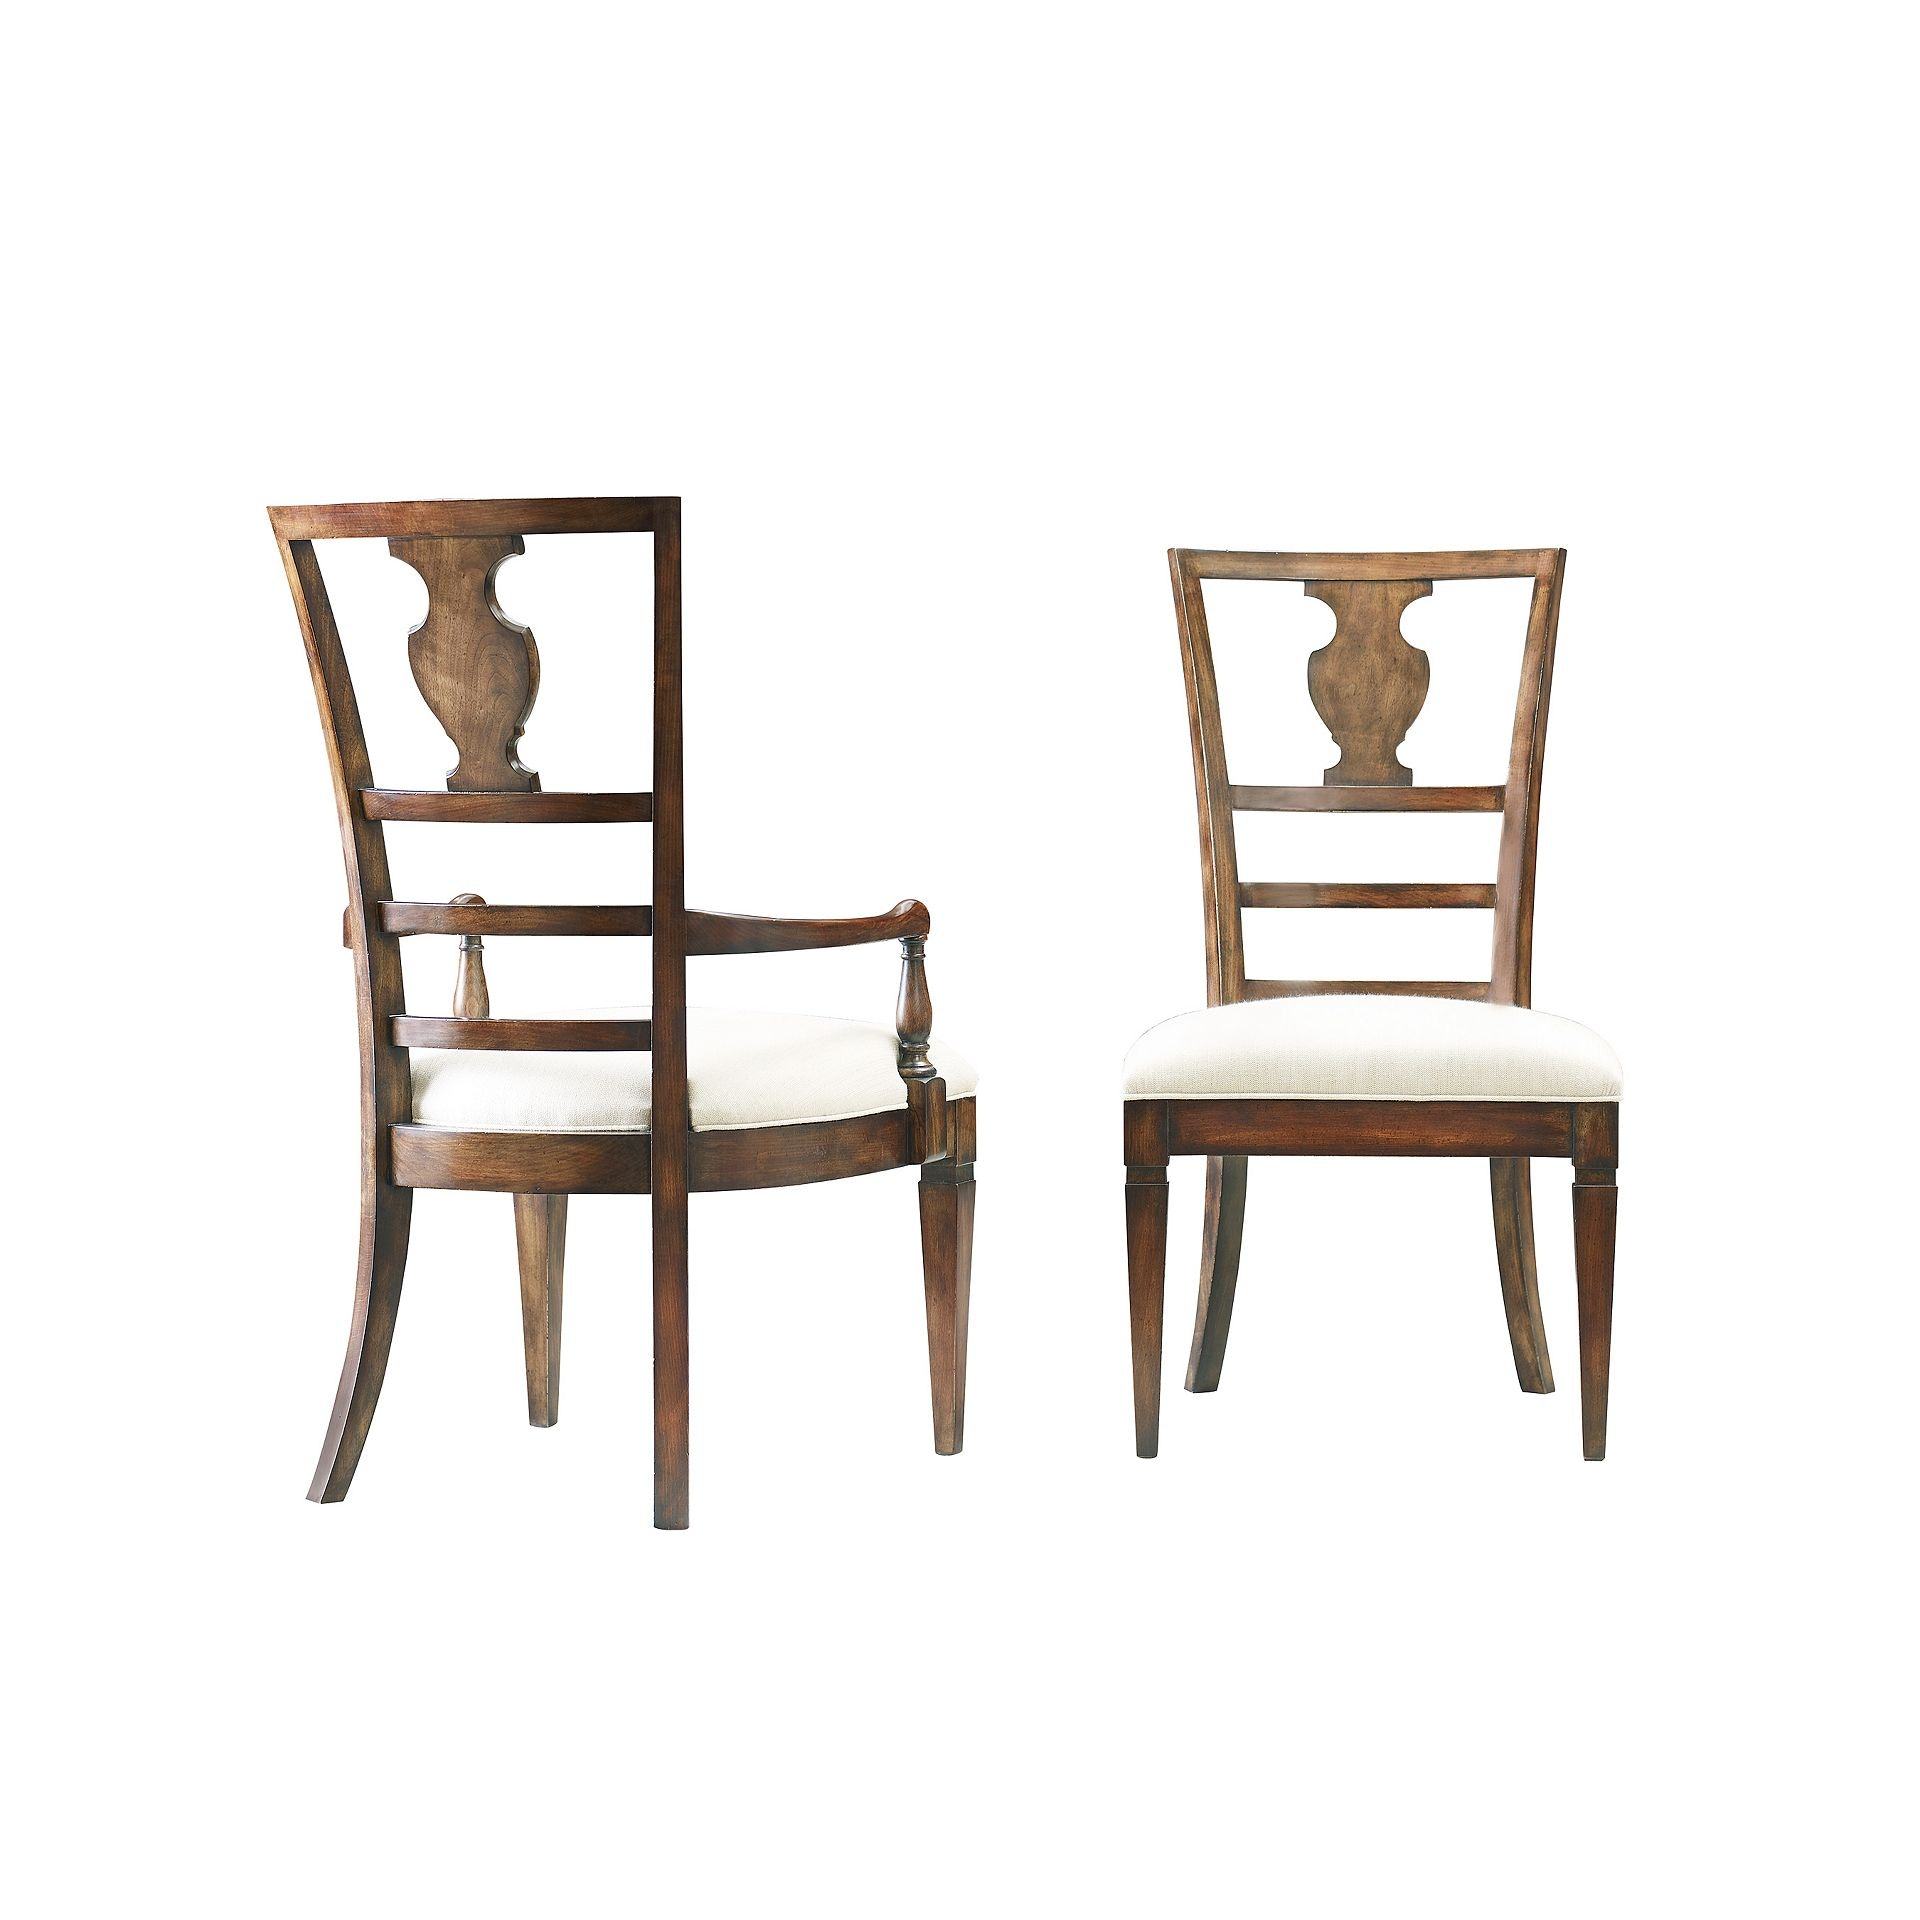 Henredon Furniture Acquisitions By Henredon Arm Chair 3401 27